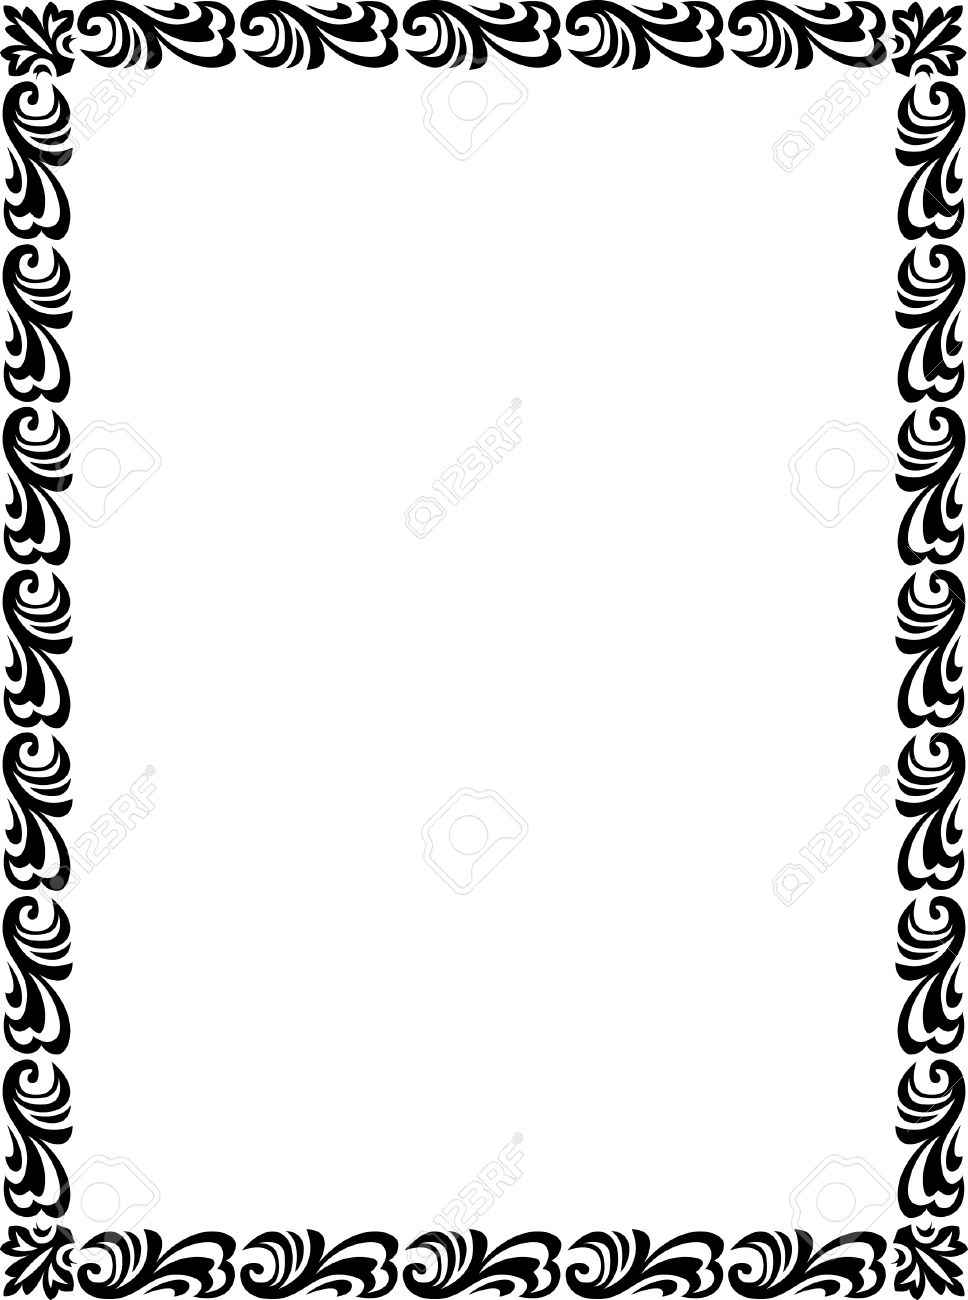 Simple Border Designs For School Projects To Draw | Free ...